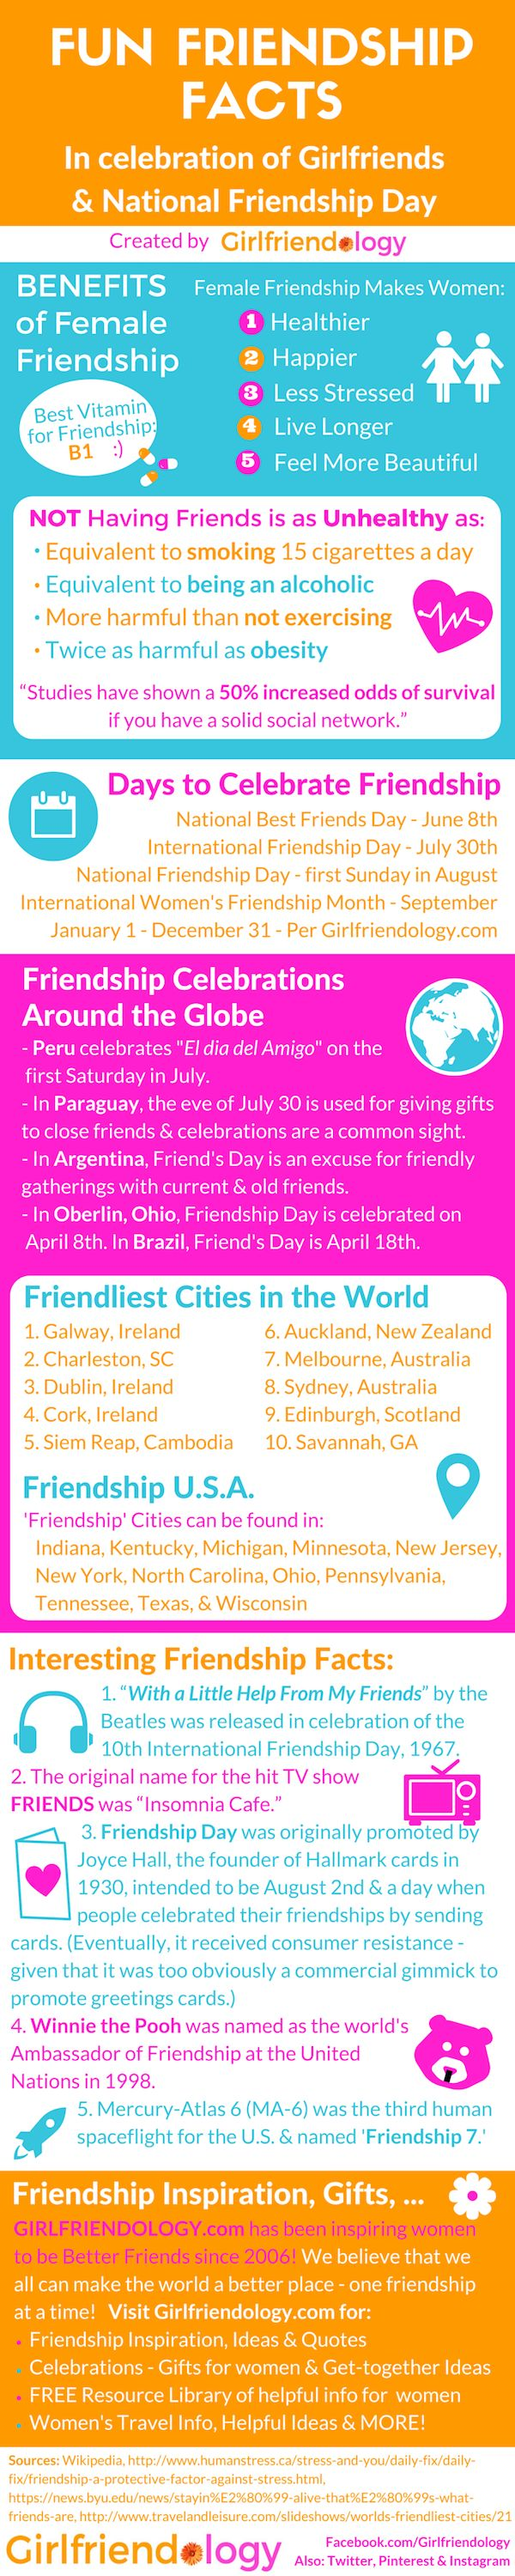 National Friendship Day - June 8, 2016